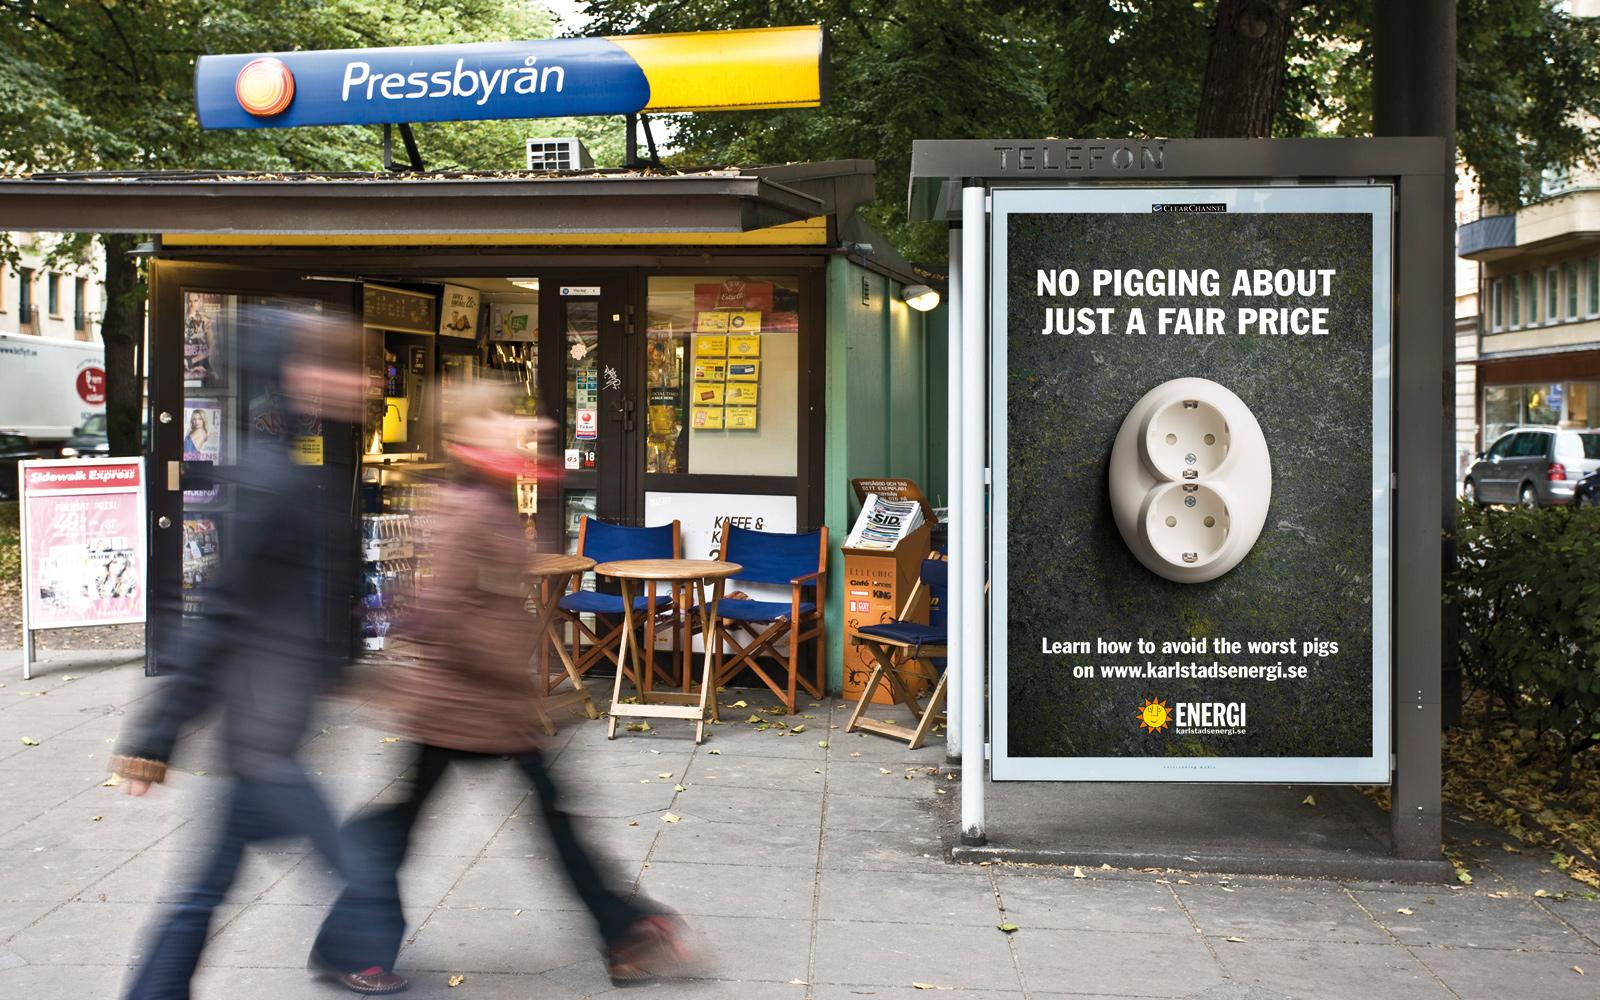 Karlstad Energy Outdoor Ad -  No pigging about